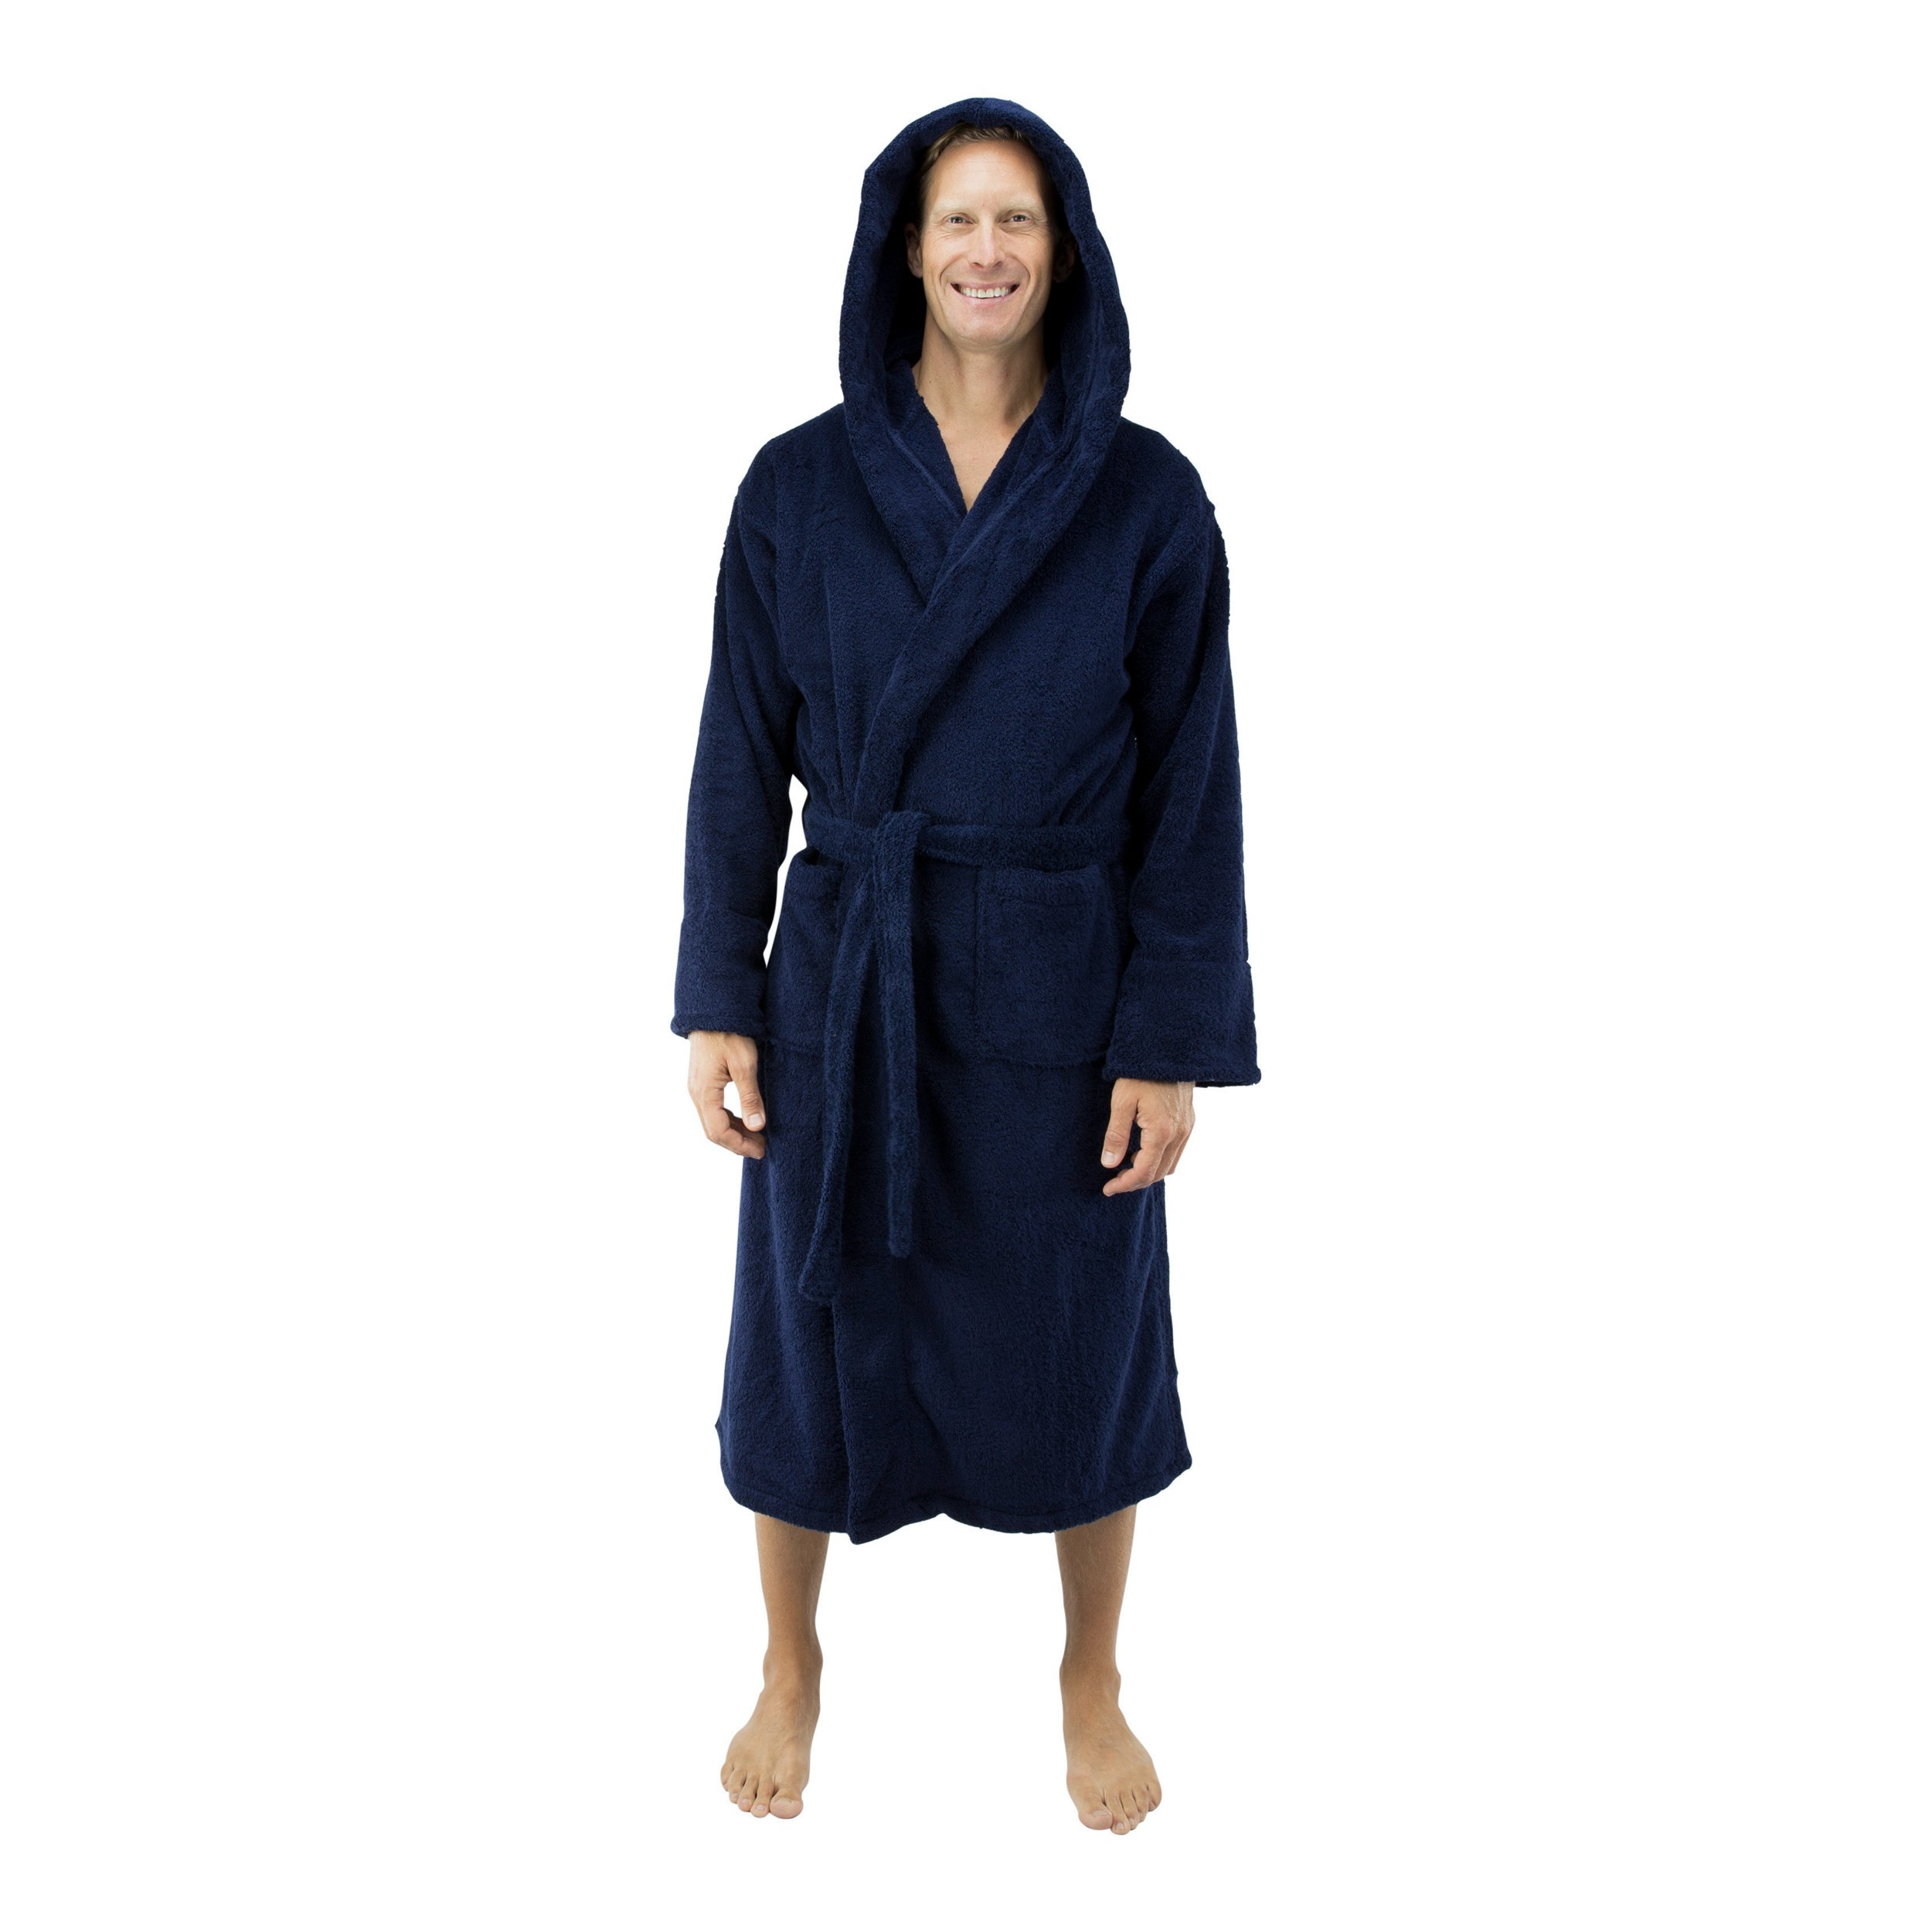 Comfy Robes Men's Deluxe 20 oz. Turkish Cotton Hooded Bathrobe, L/XL (OSFM) Navy